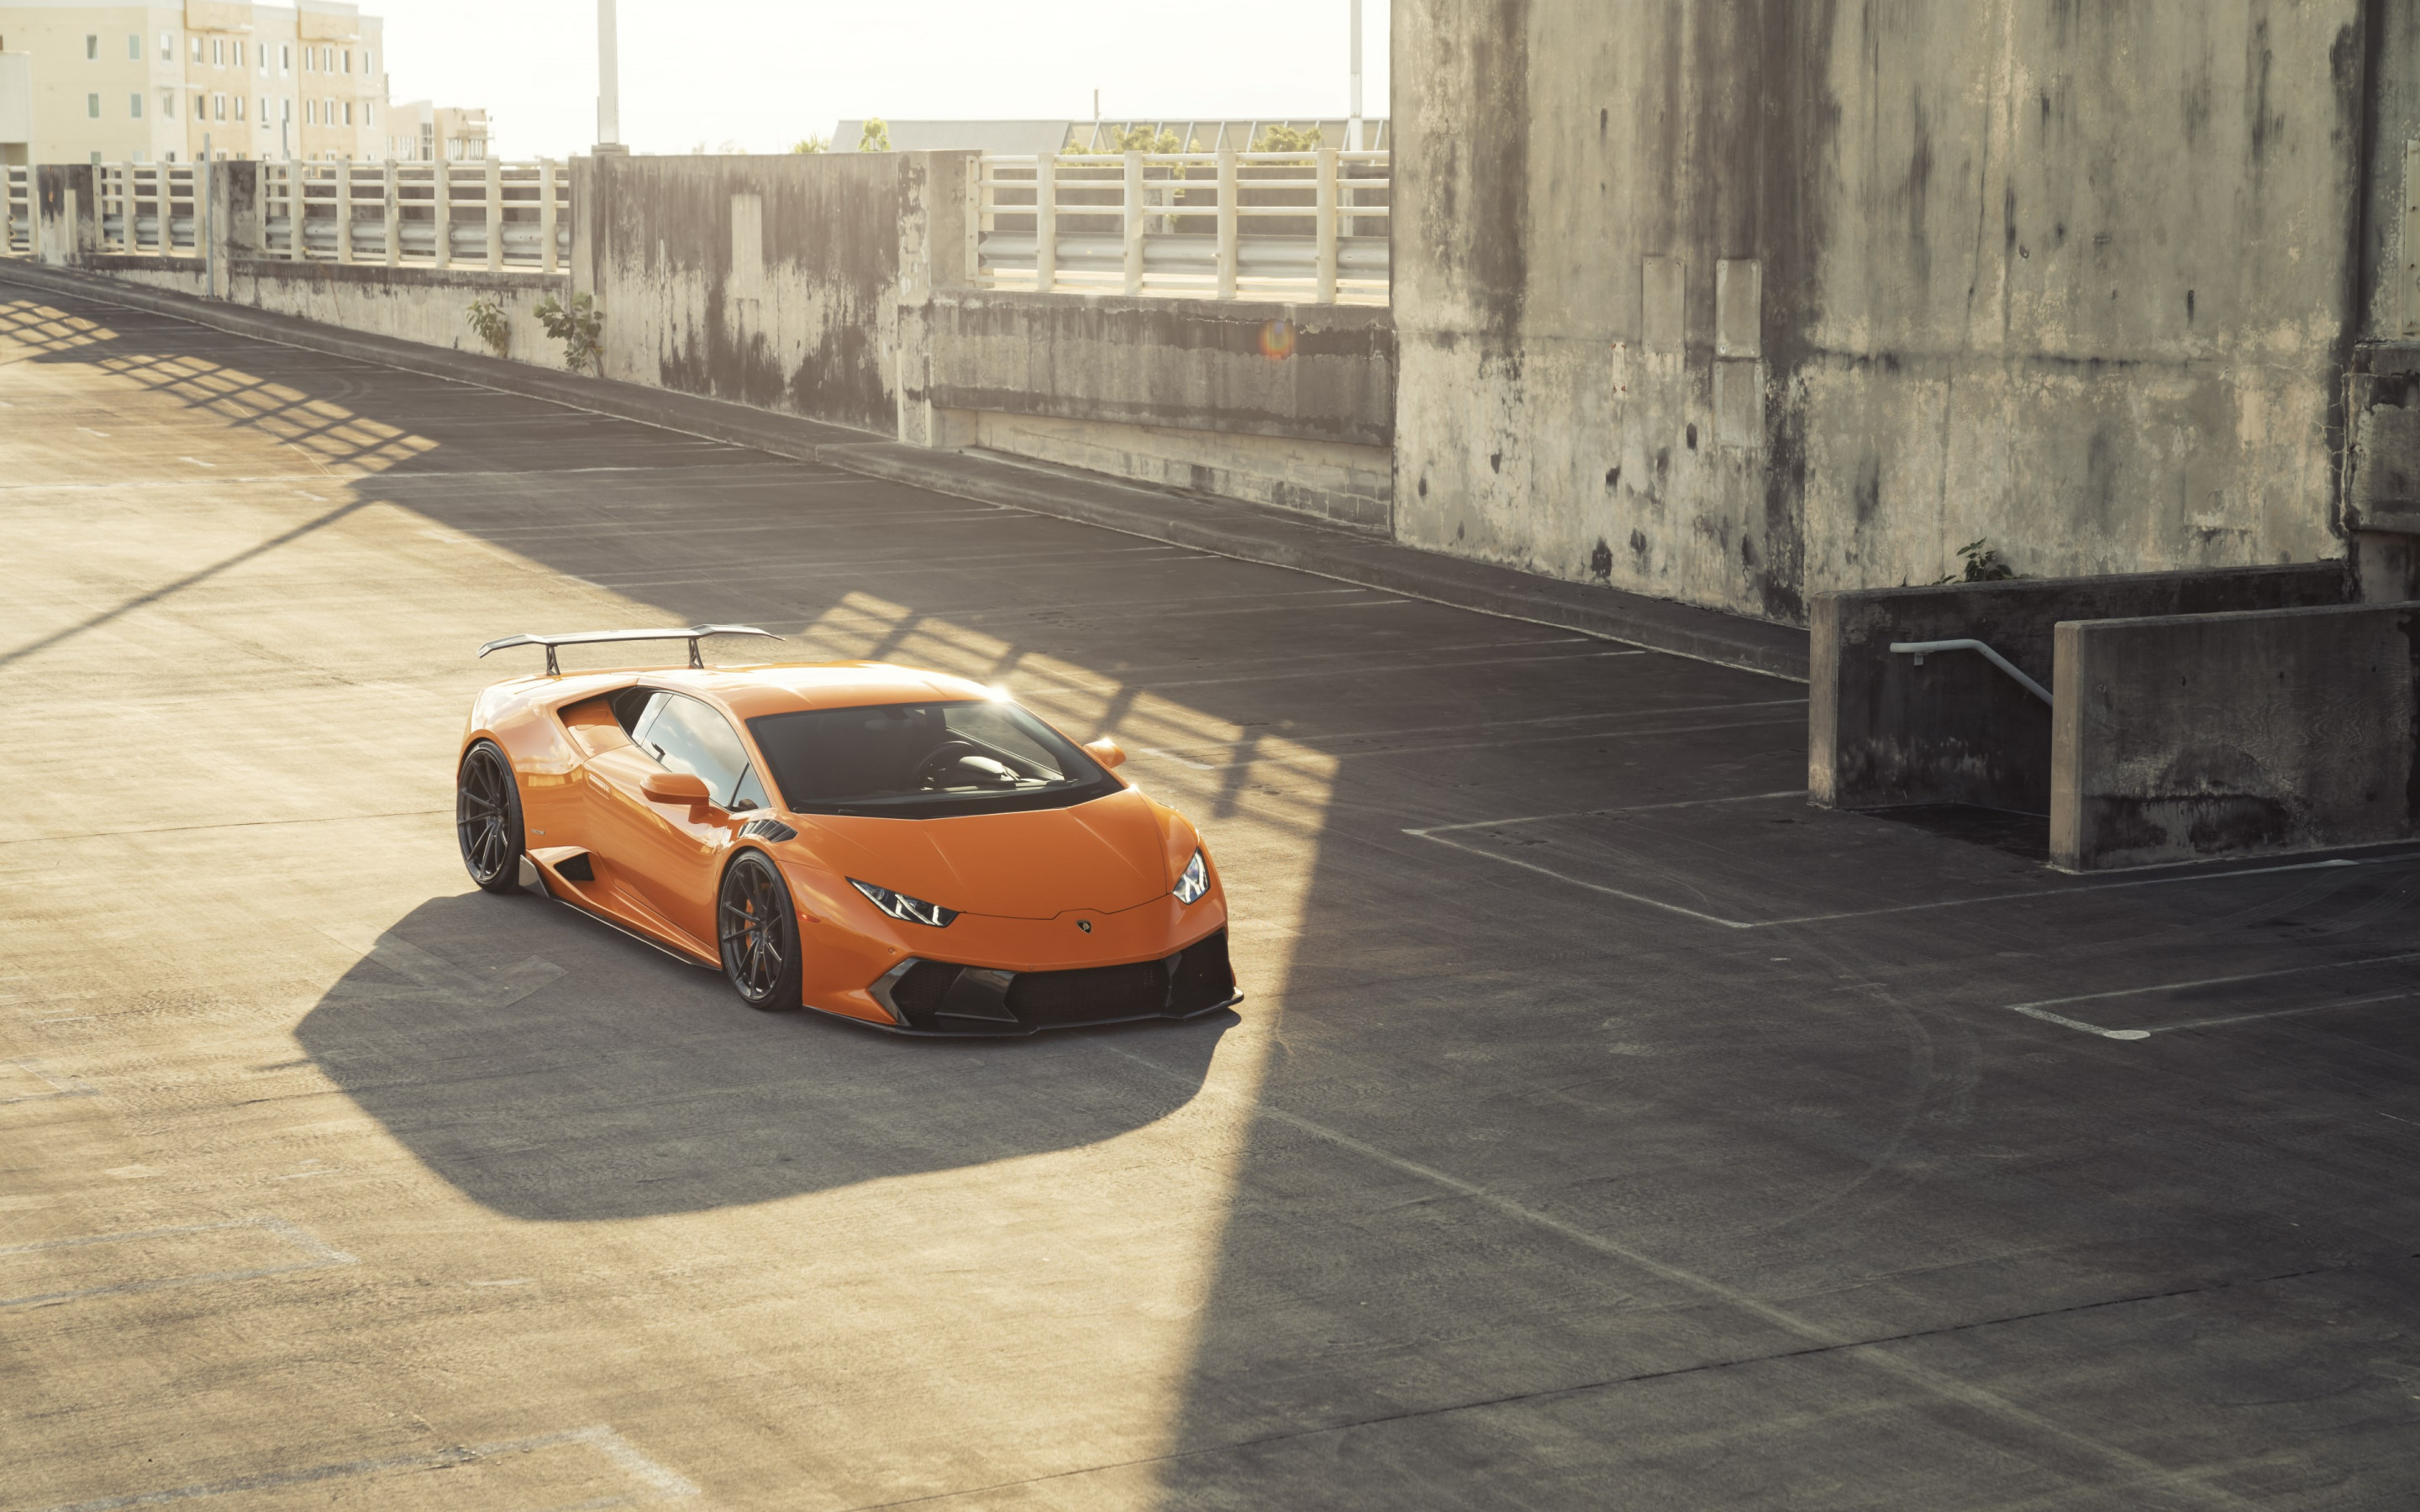 ANRKY Fish Orange Lambo Huracan wallpaper 2880x1800